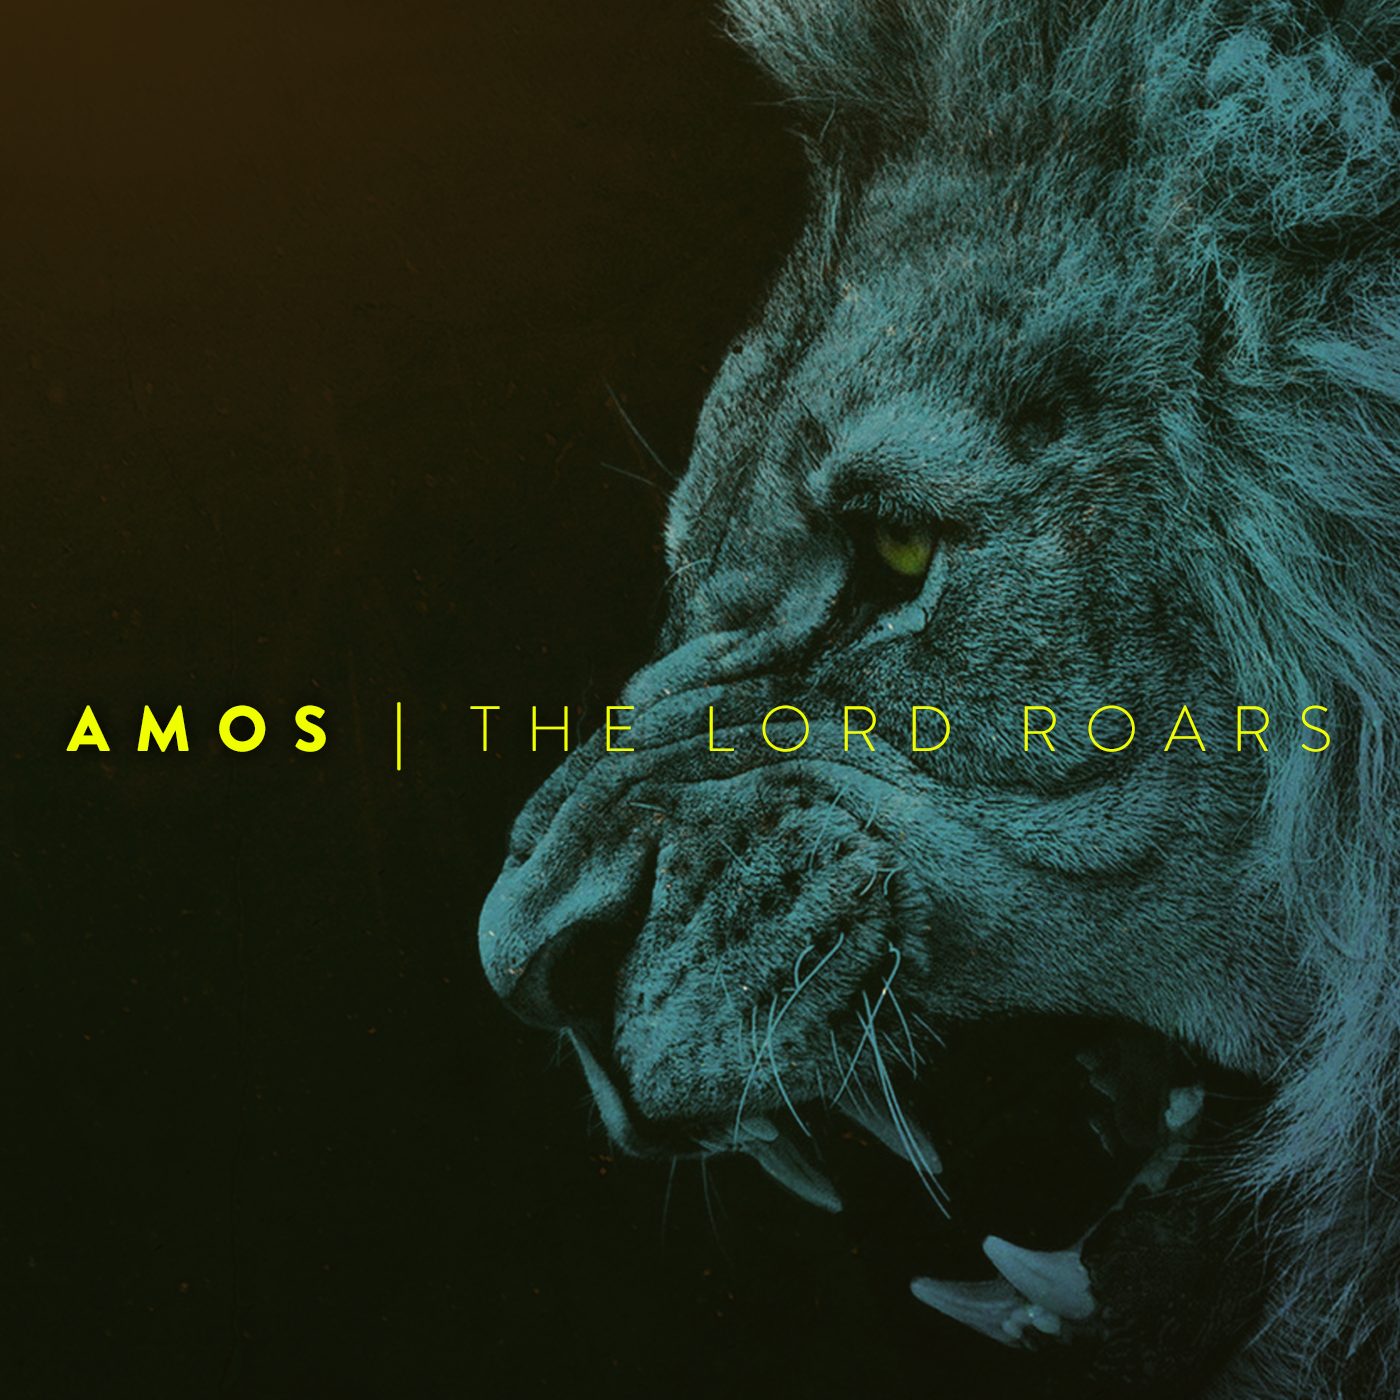 This is a sermon series on the book of Amos.